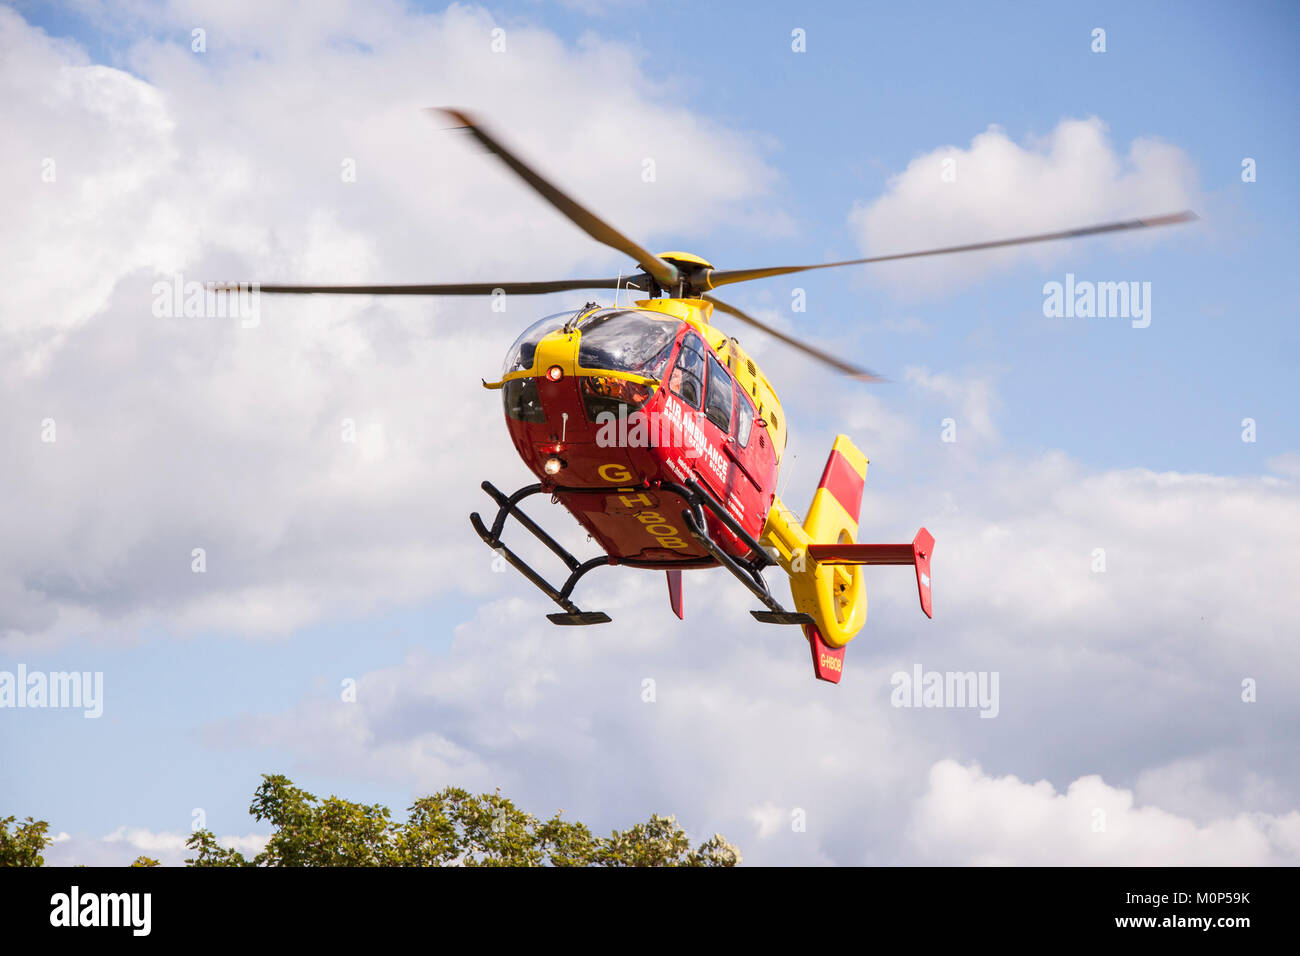 Berks,Oxon and Bucks air ambulance helicopter  in action - Stock Image